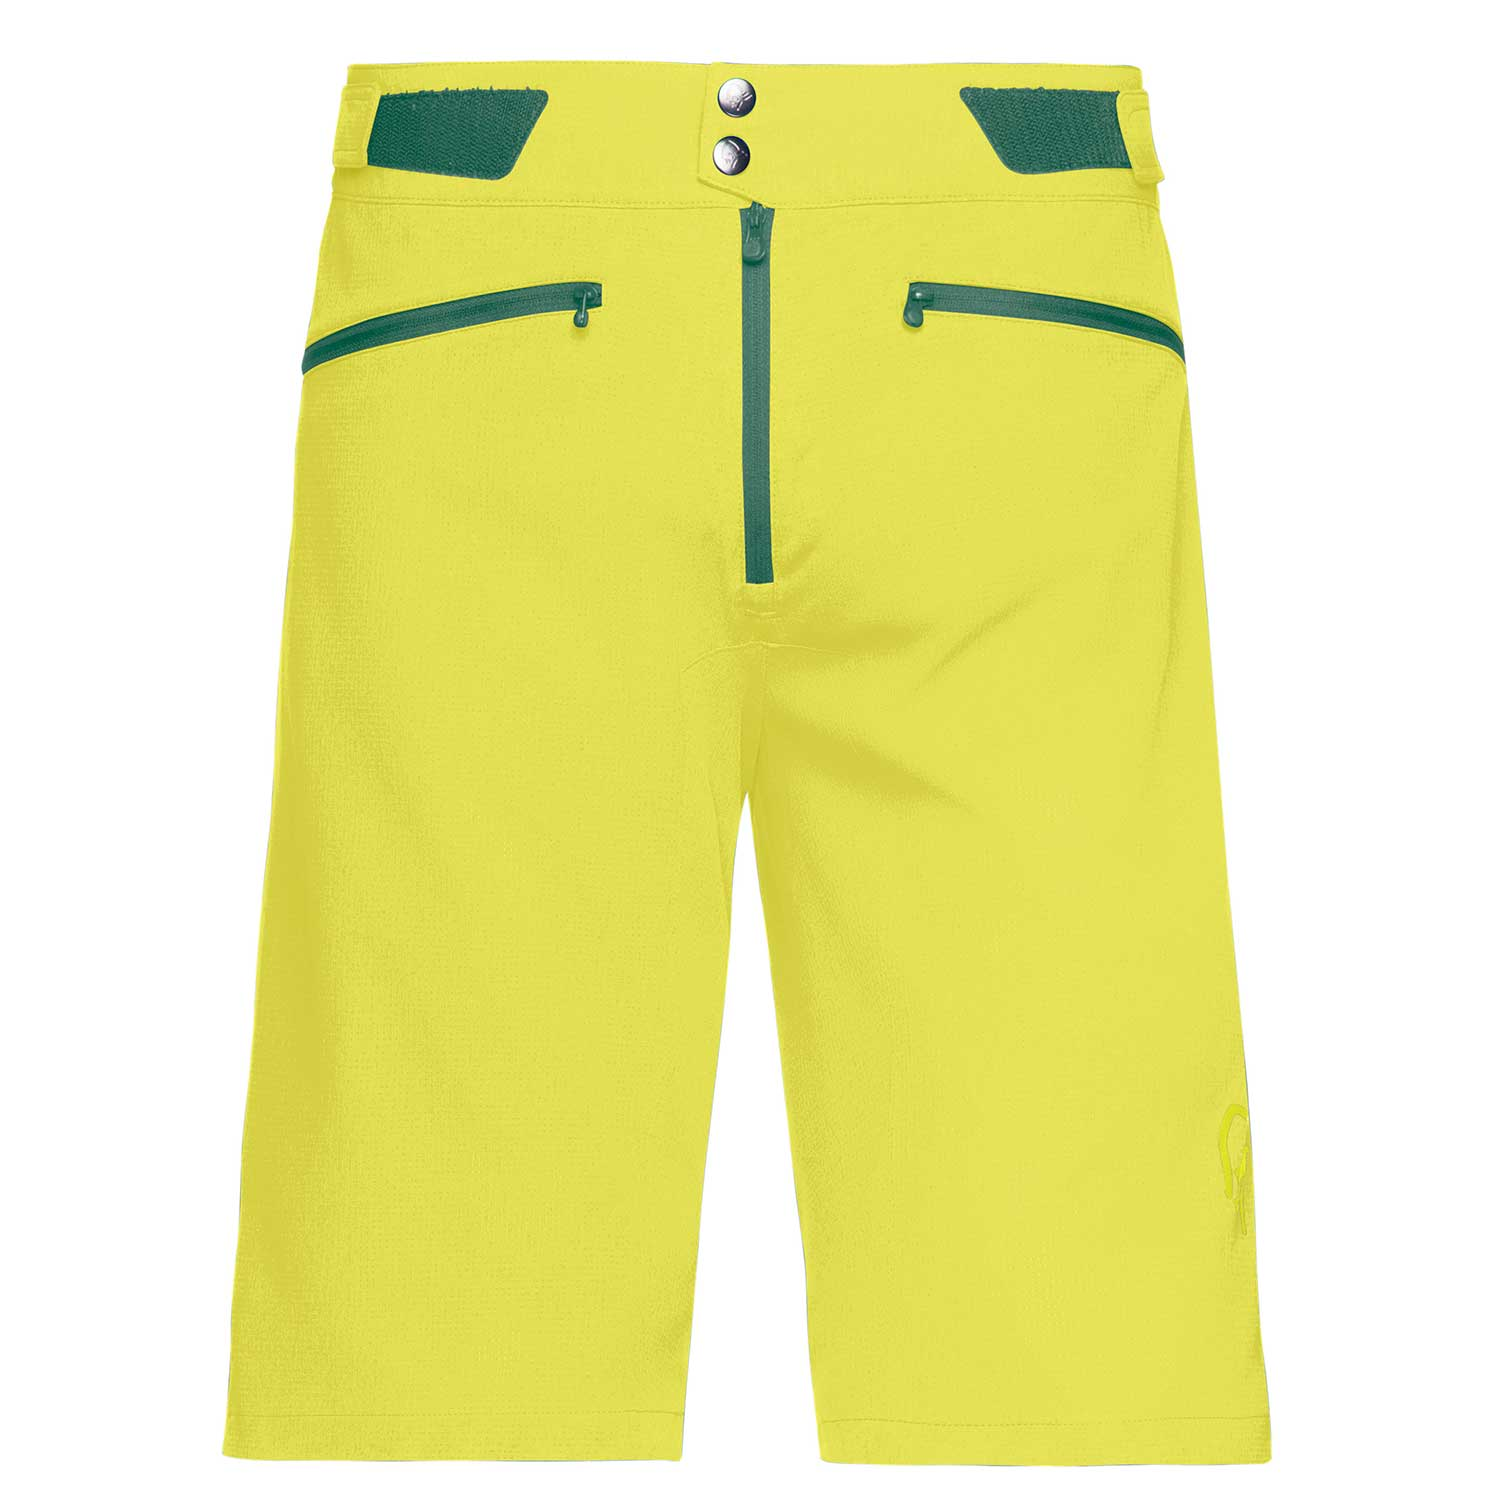 fjora flex1 lightweight Shorts (M)